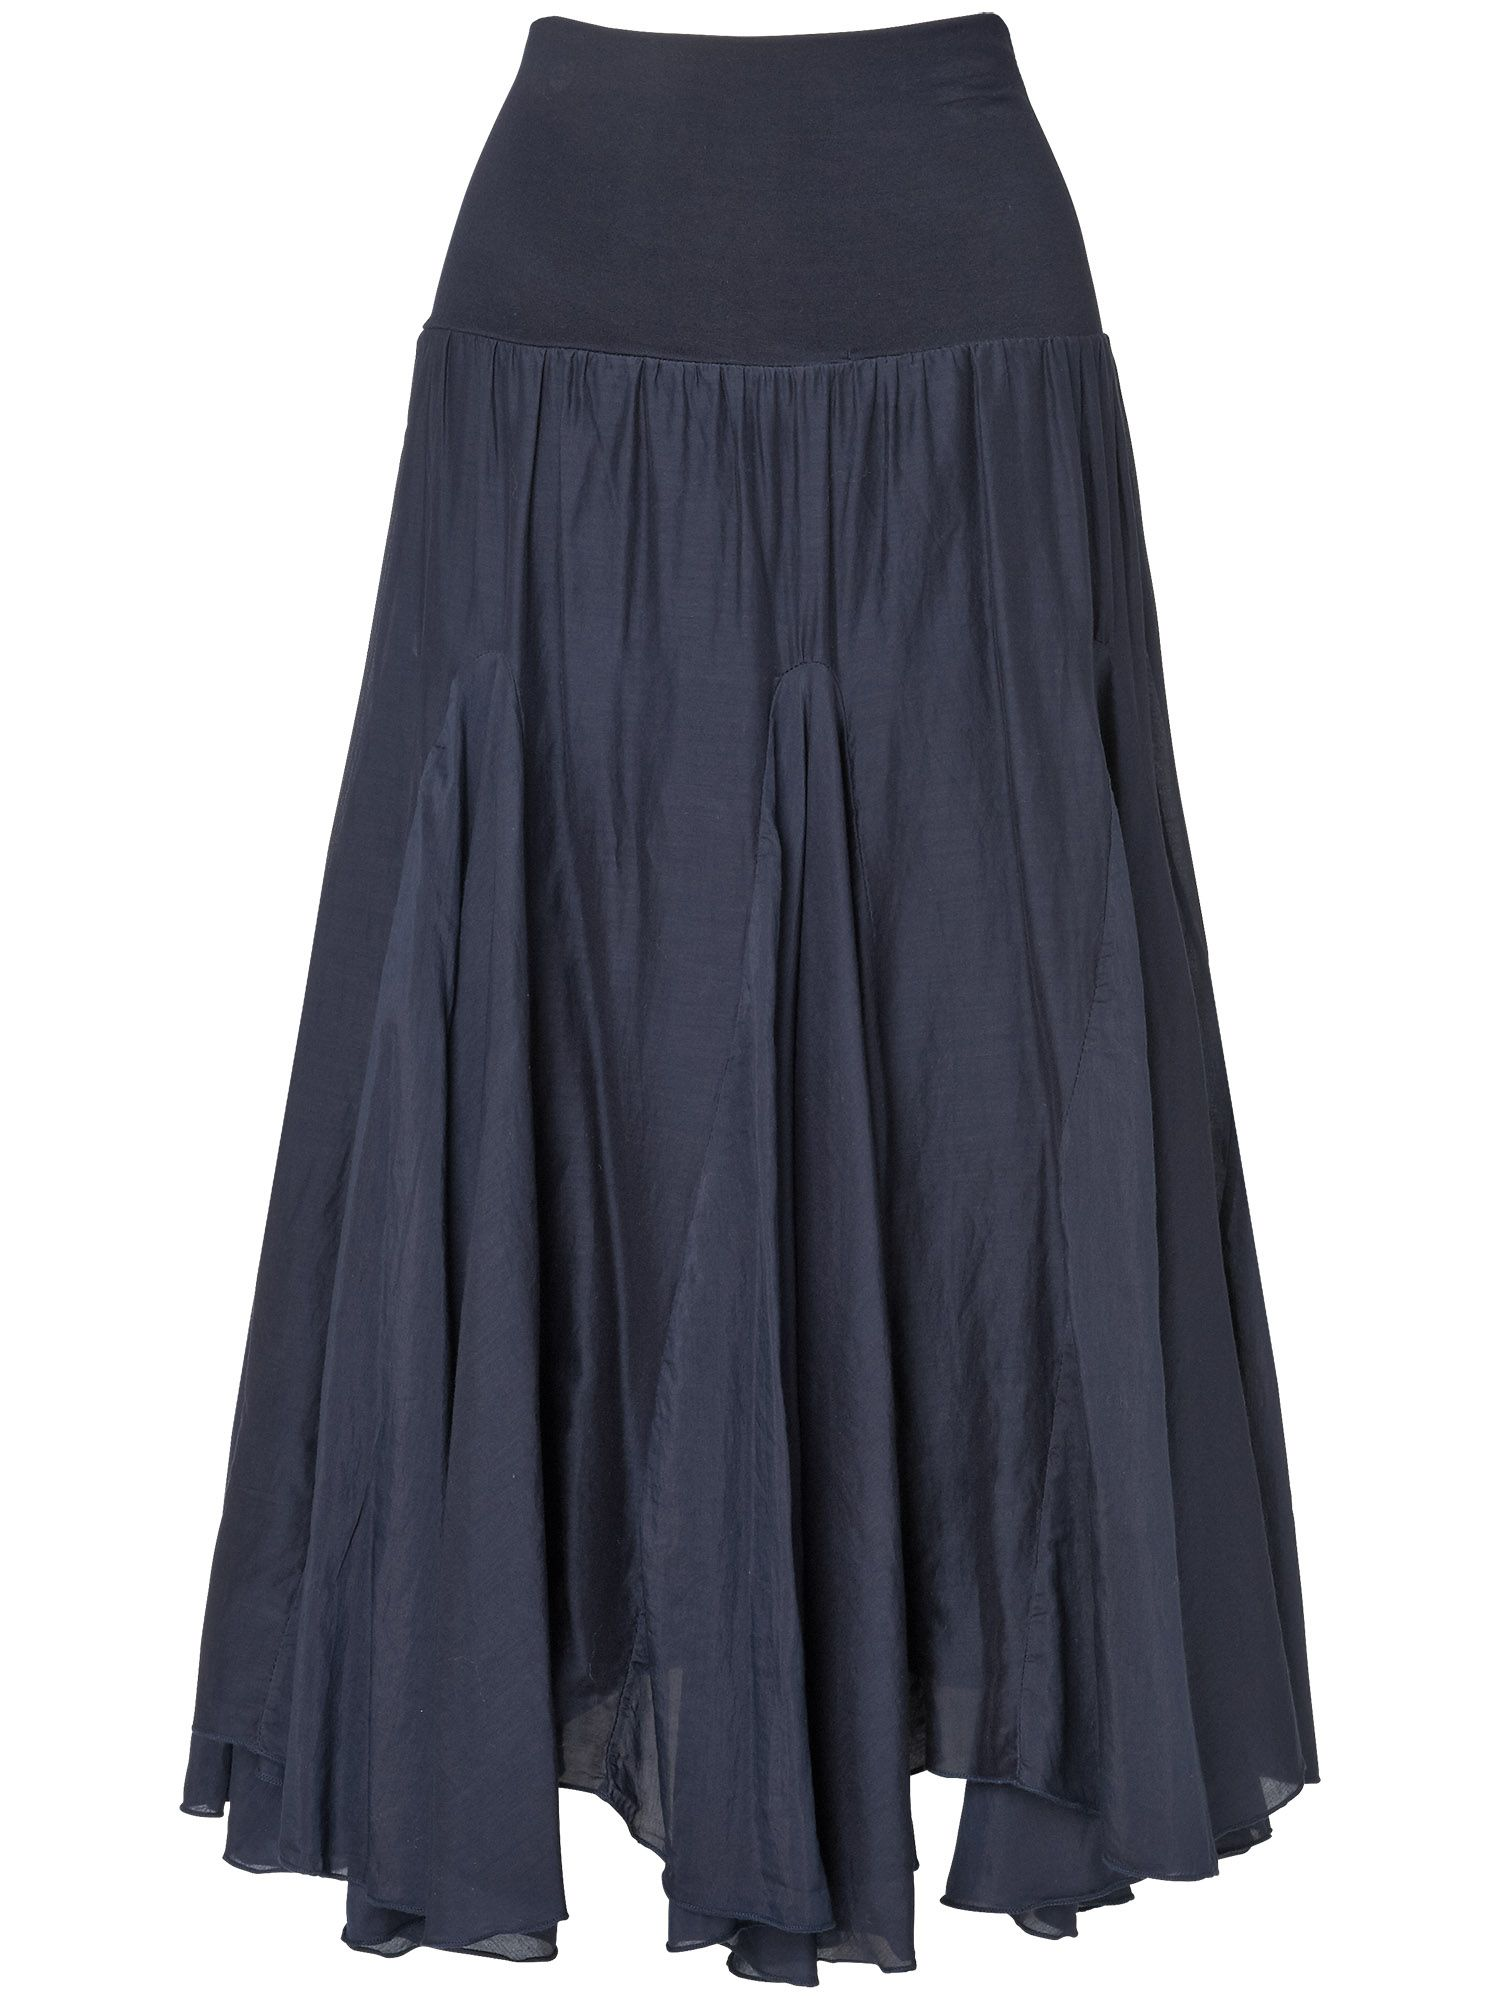 Natalia silk cotton skirt